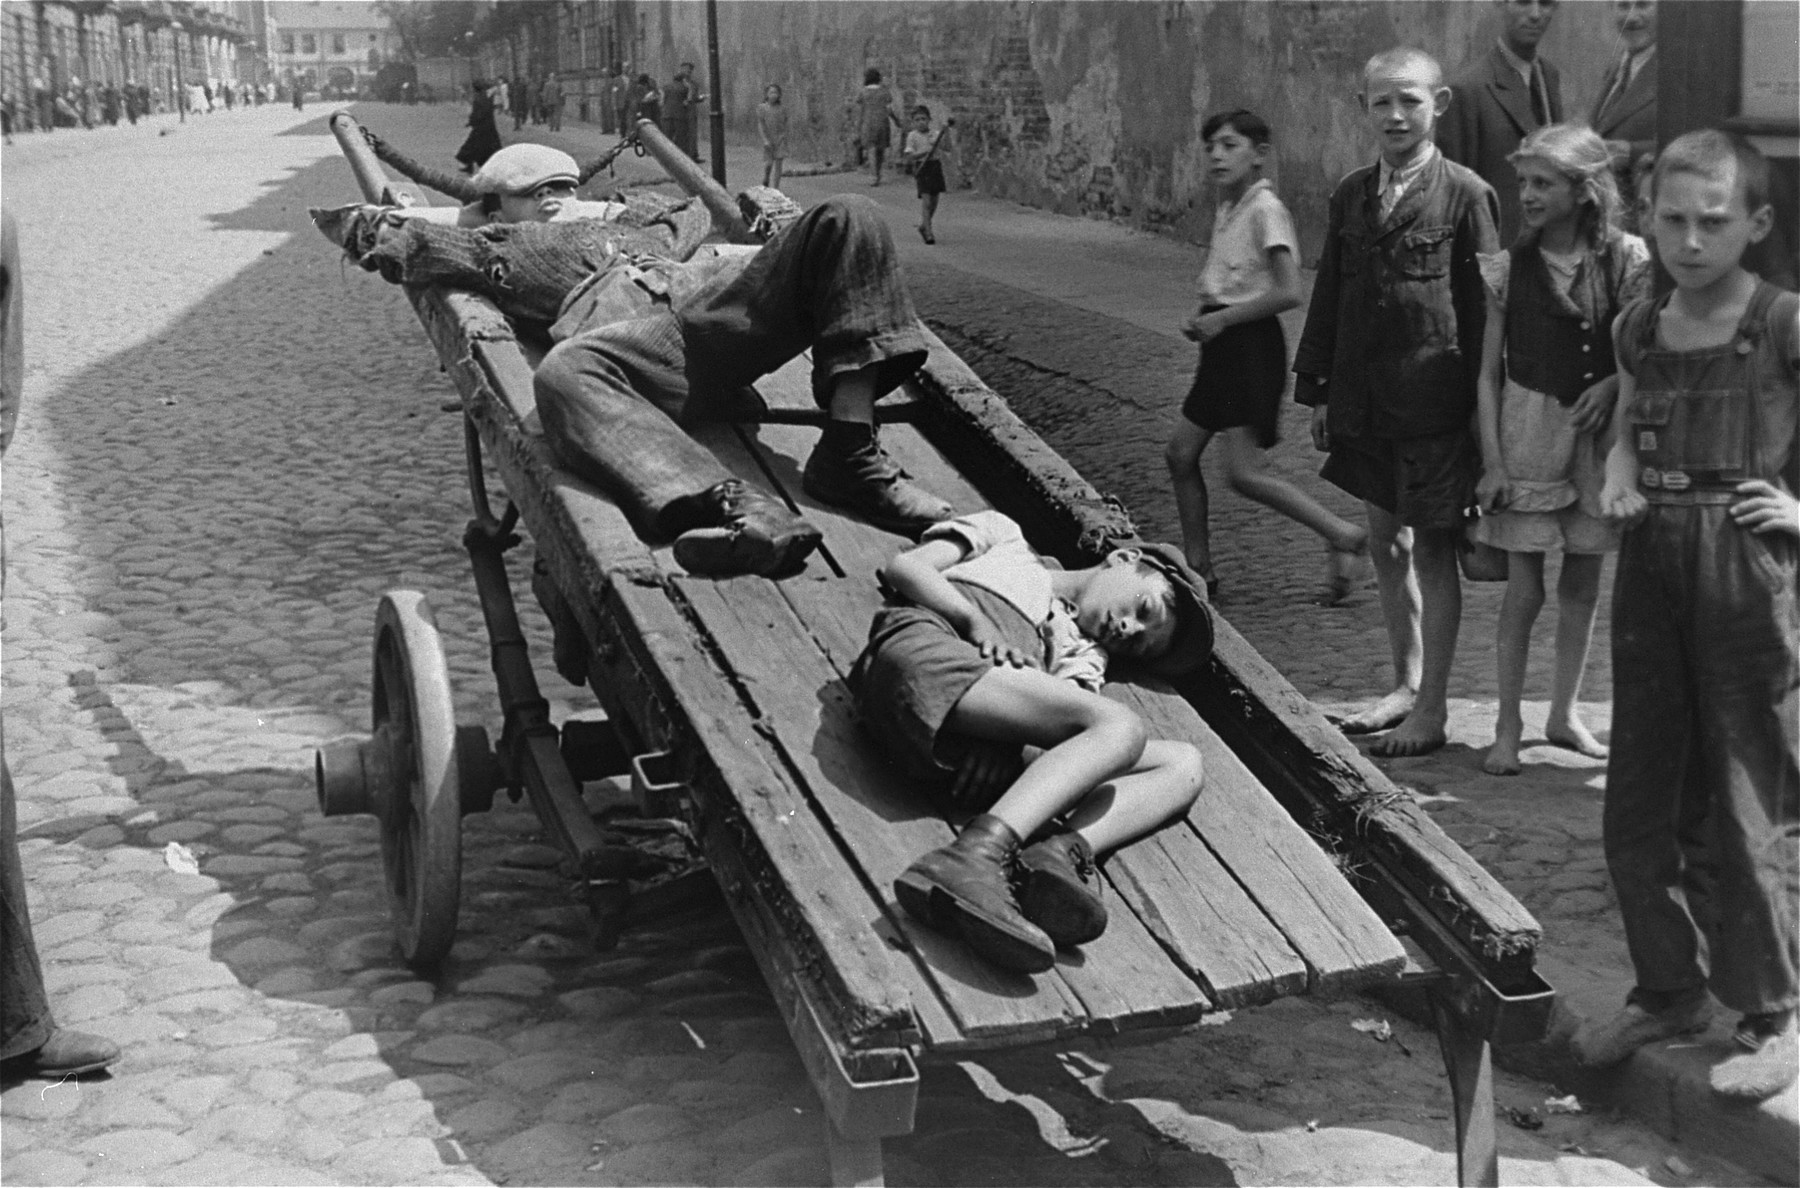 Two destitute boys sleep on a cart parked on a street in the Warsaw ghetto.